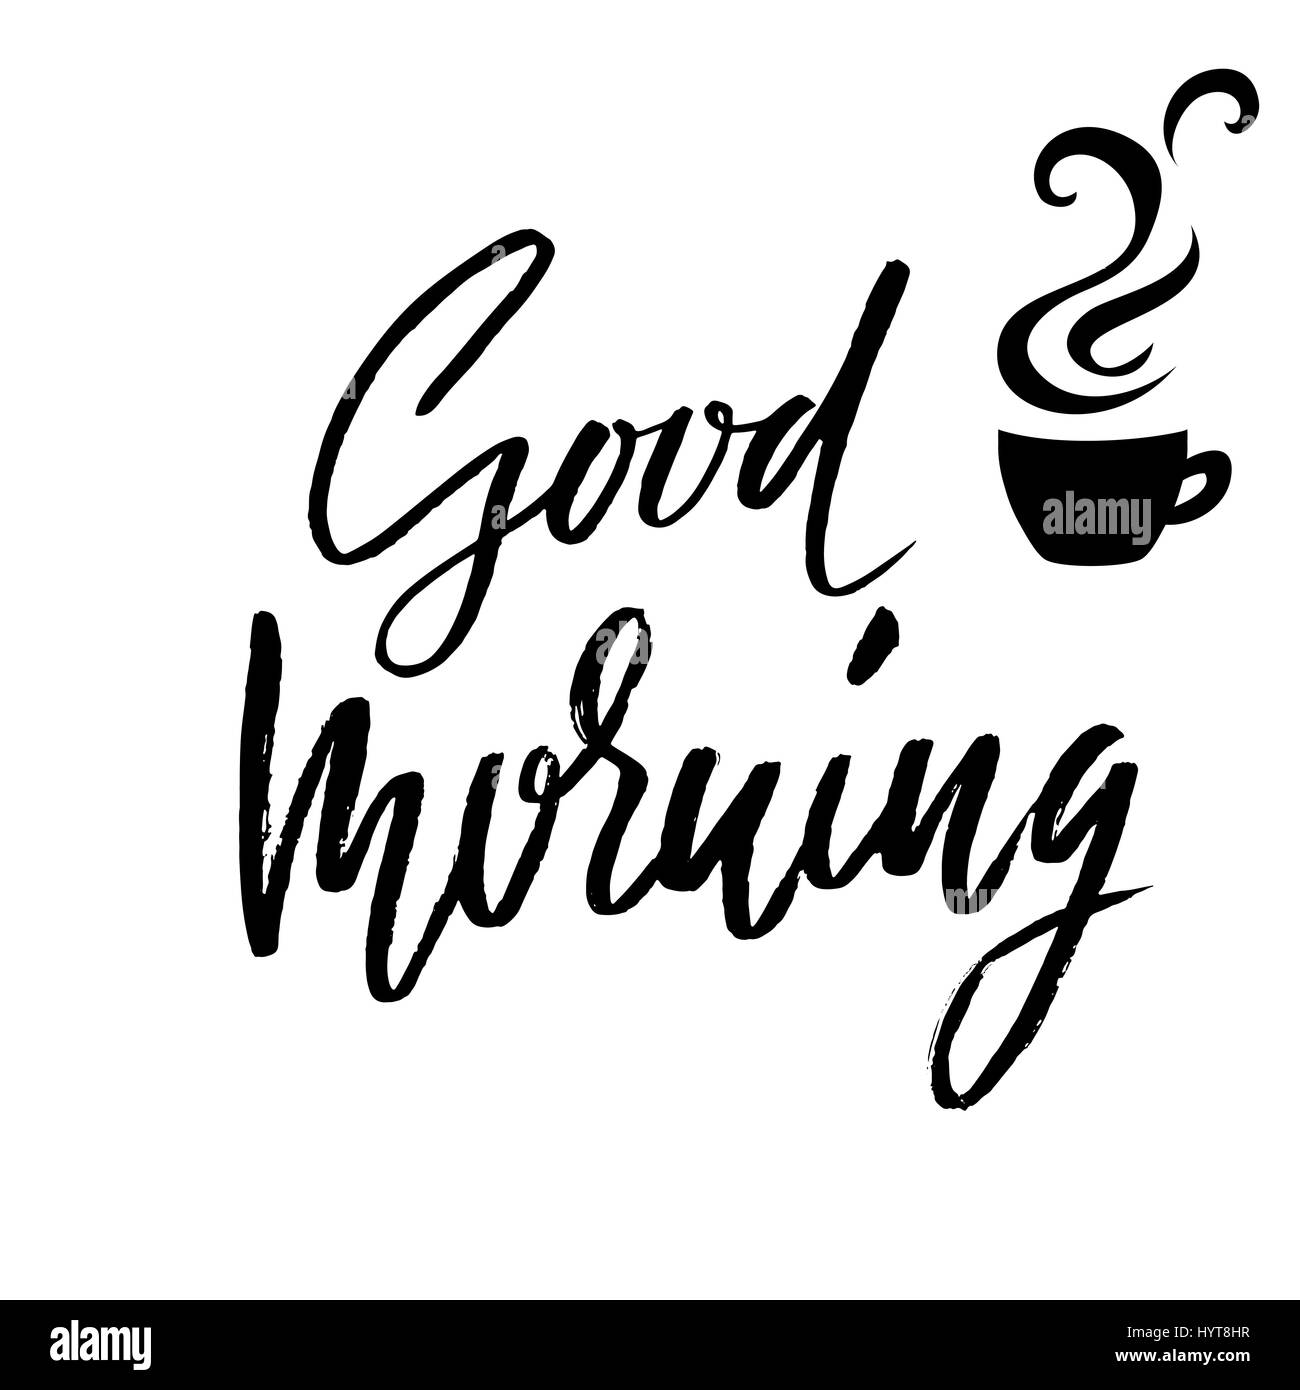 good morning hand drawn lettering text handwritten calligraphy